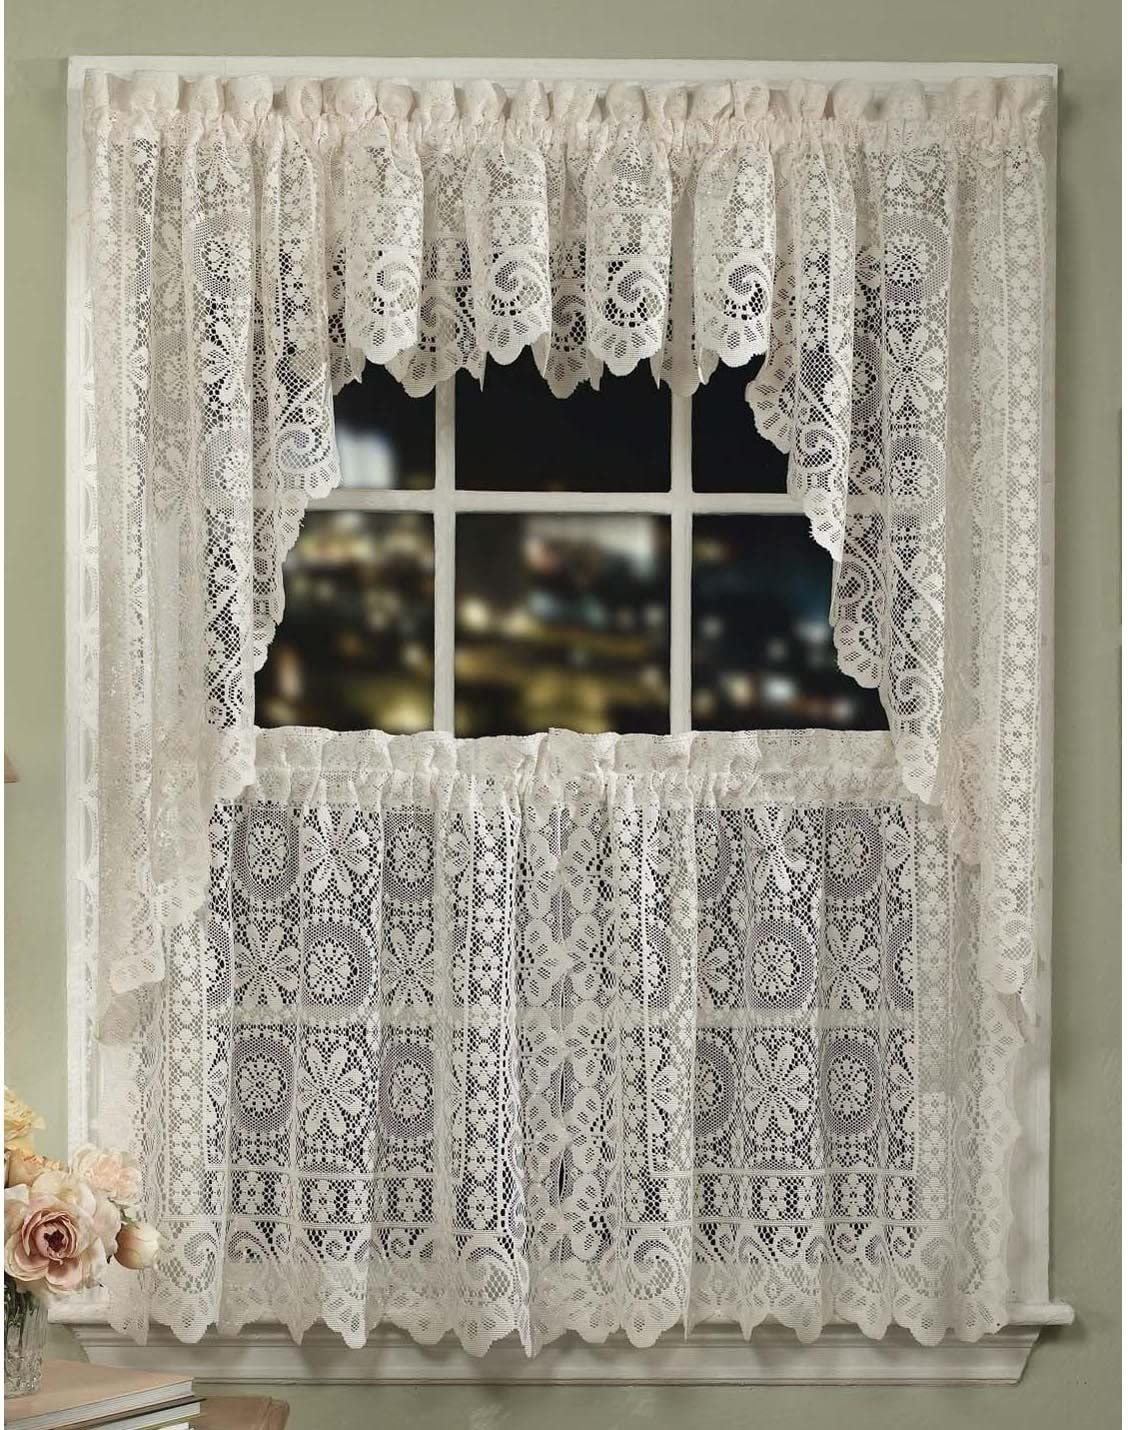 LORRAINE HOME FASHIONS Hopewell Lace Window Valance, 58-Inch by 12-Inch, Cream